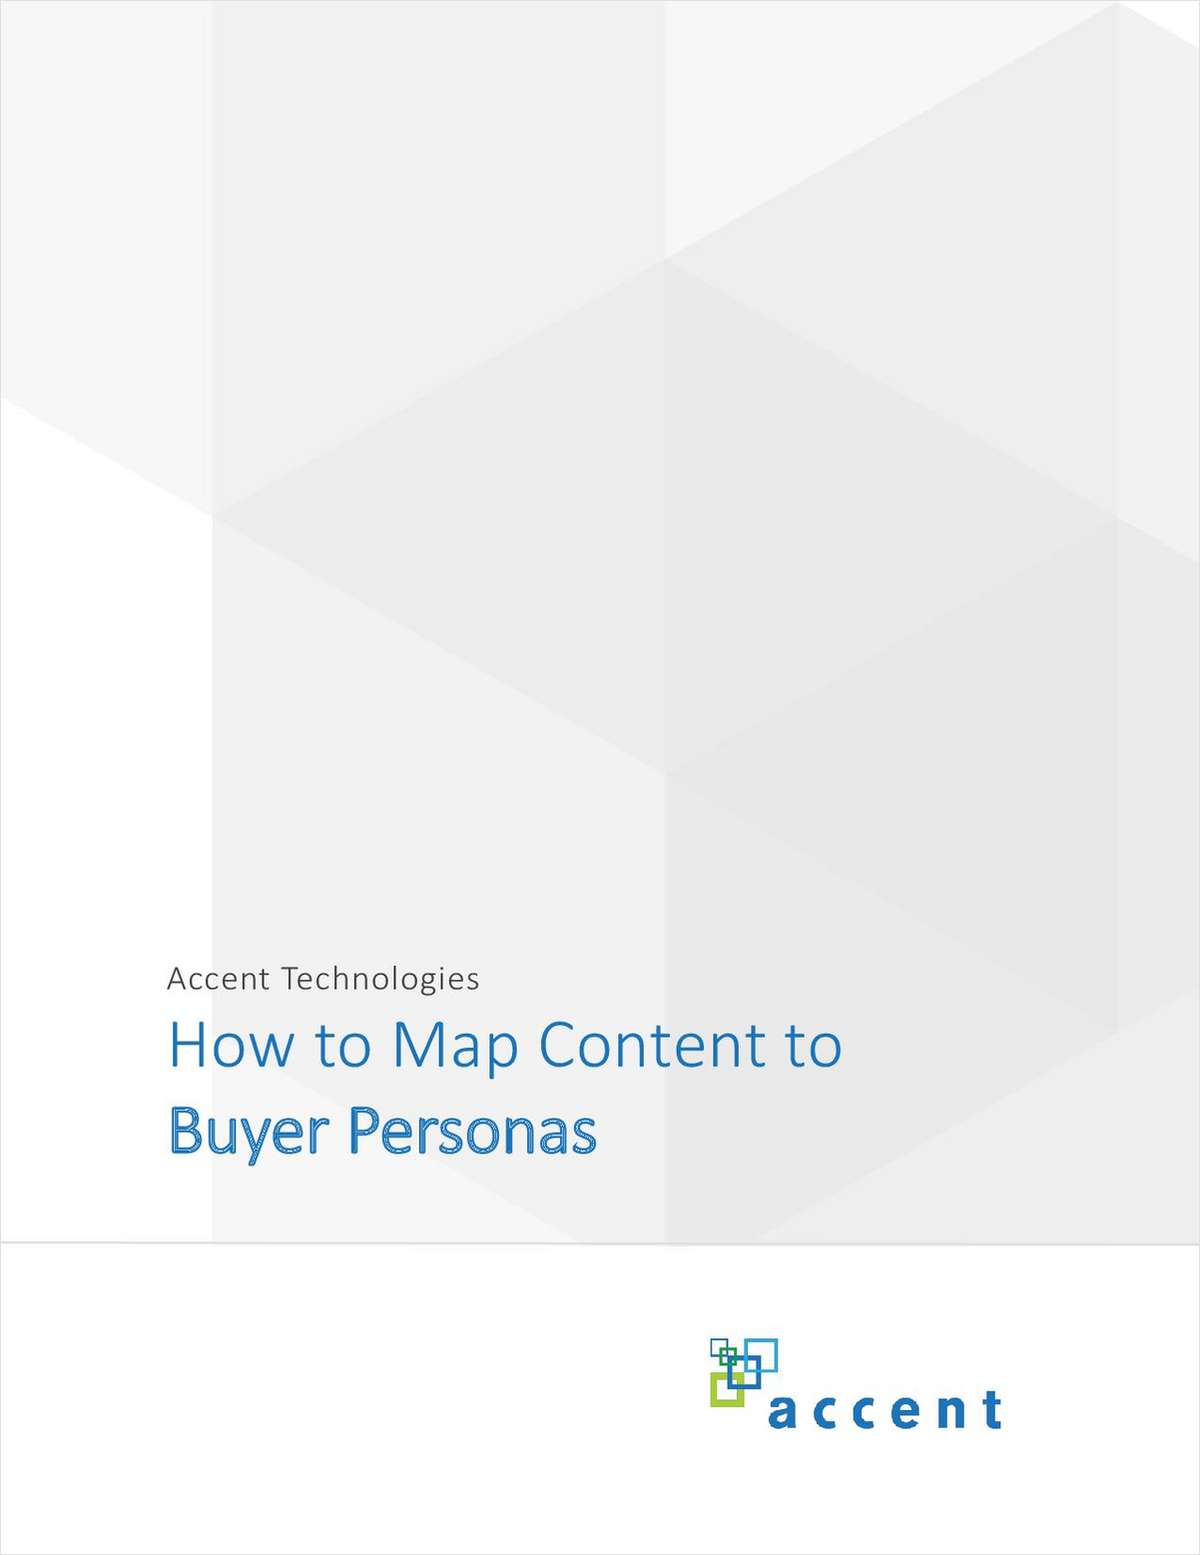 How to Map Content to Buyer Personas